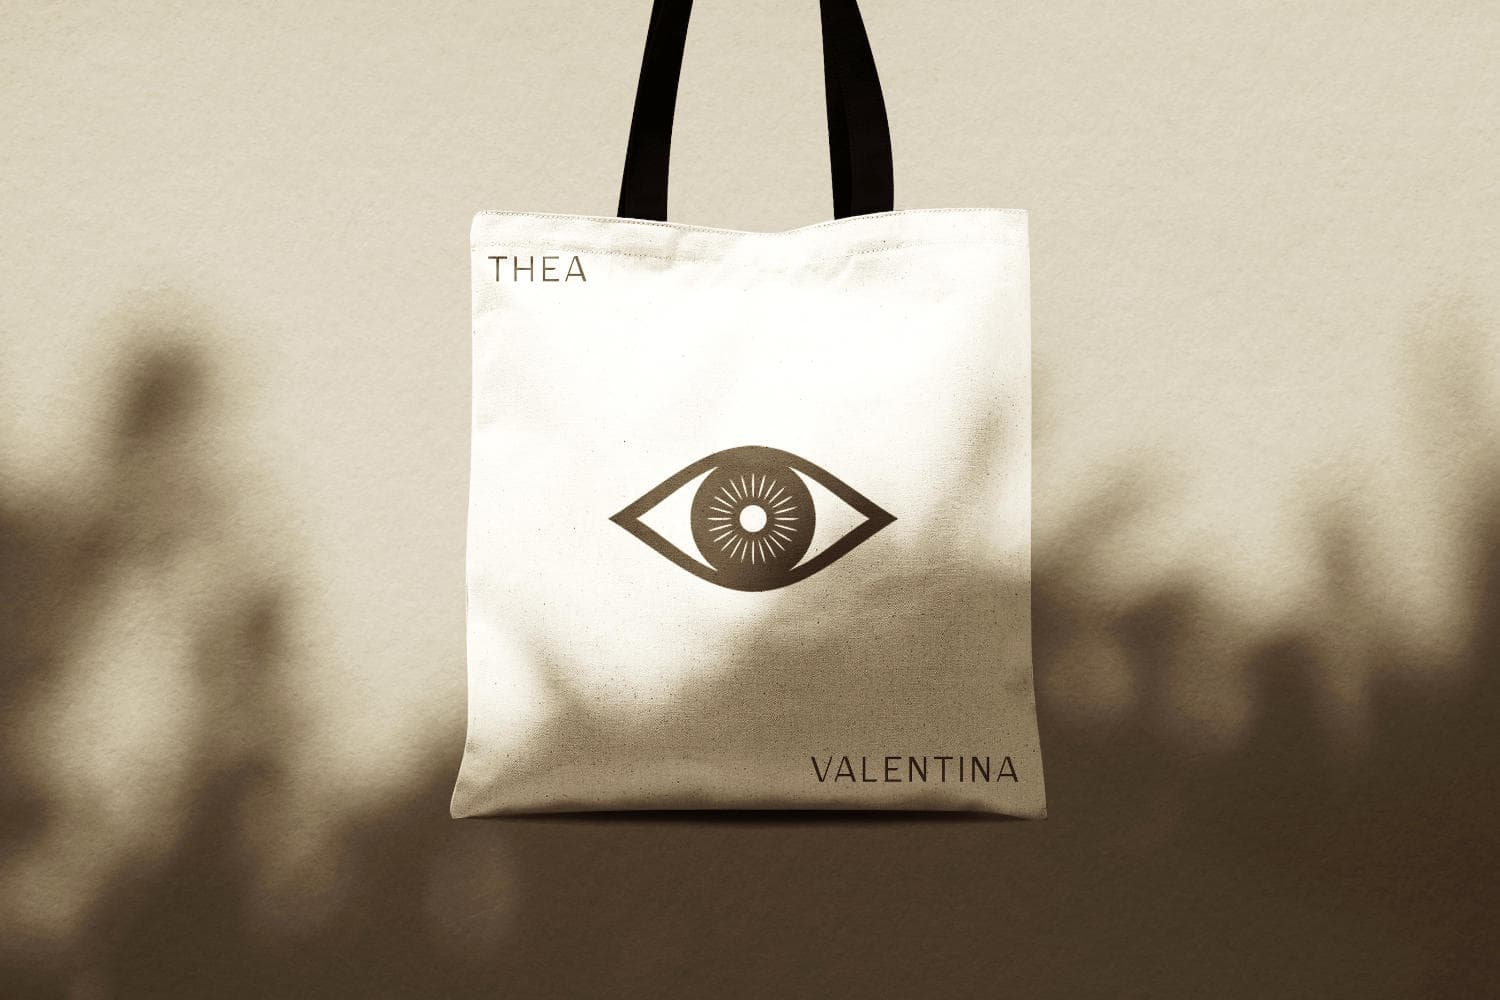 Tote bag with Thea Valentina logo.